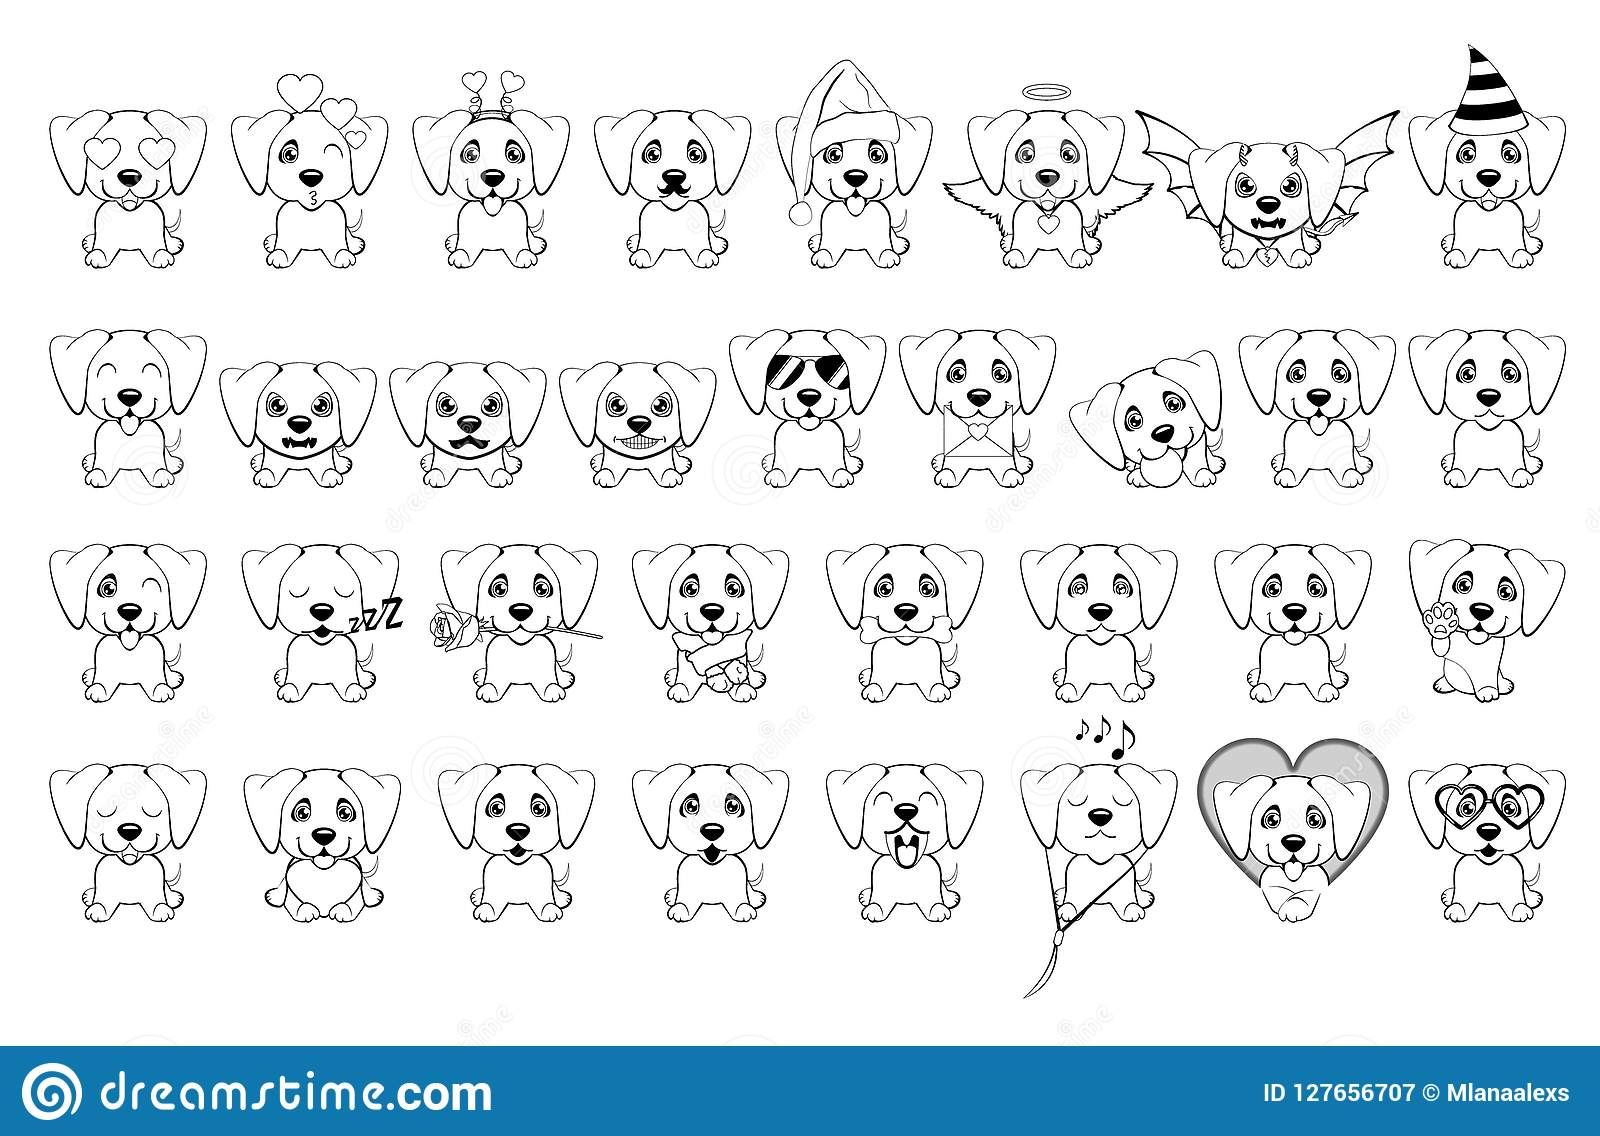 Big Set Of Little Dogs With Different Emotions And Objects Painted With Black Lines On A